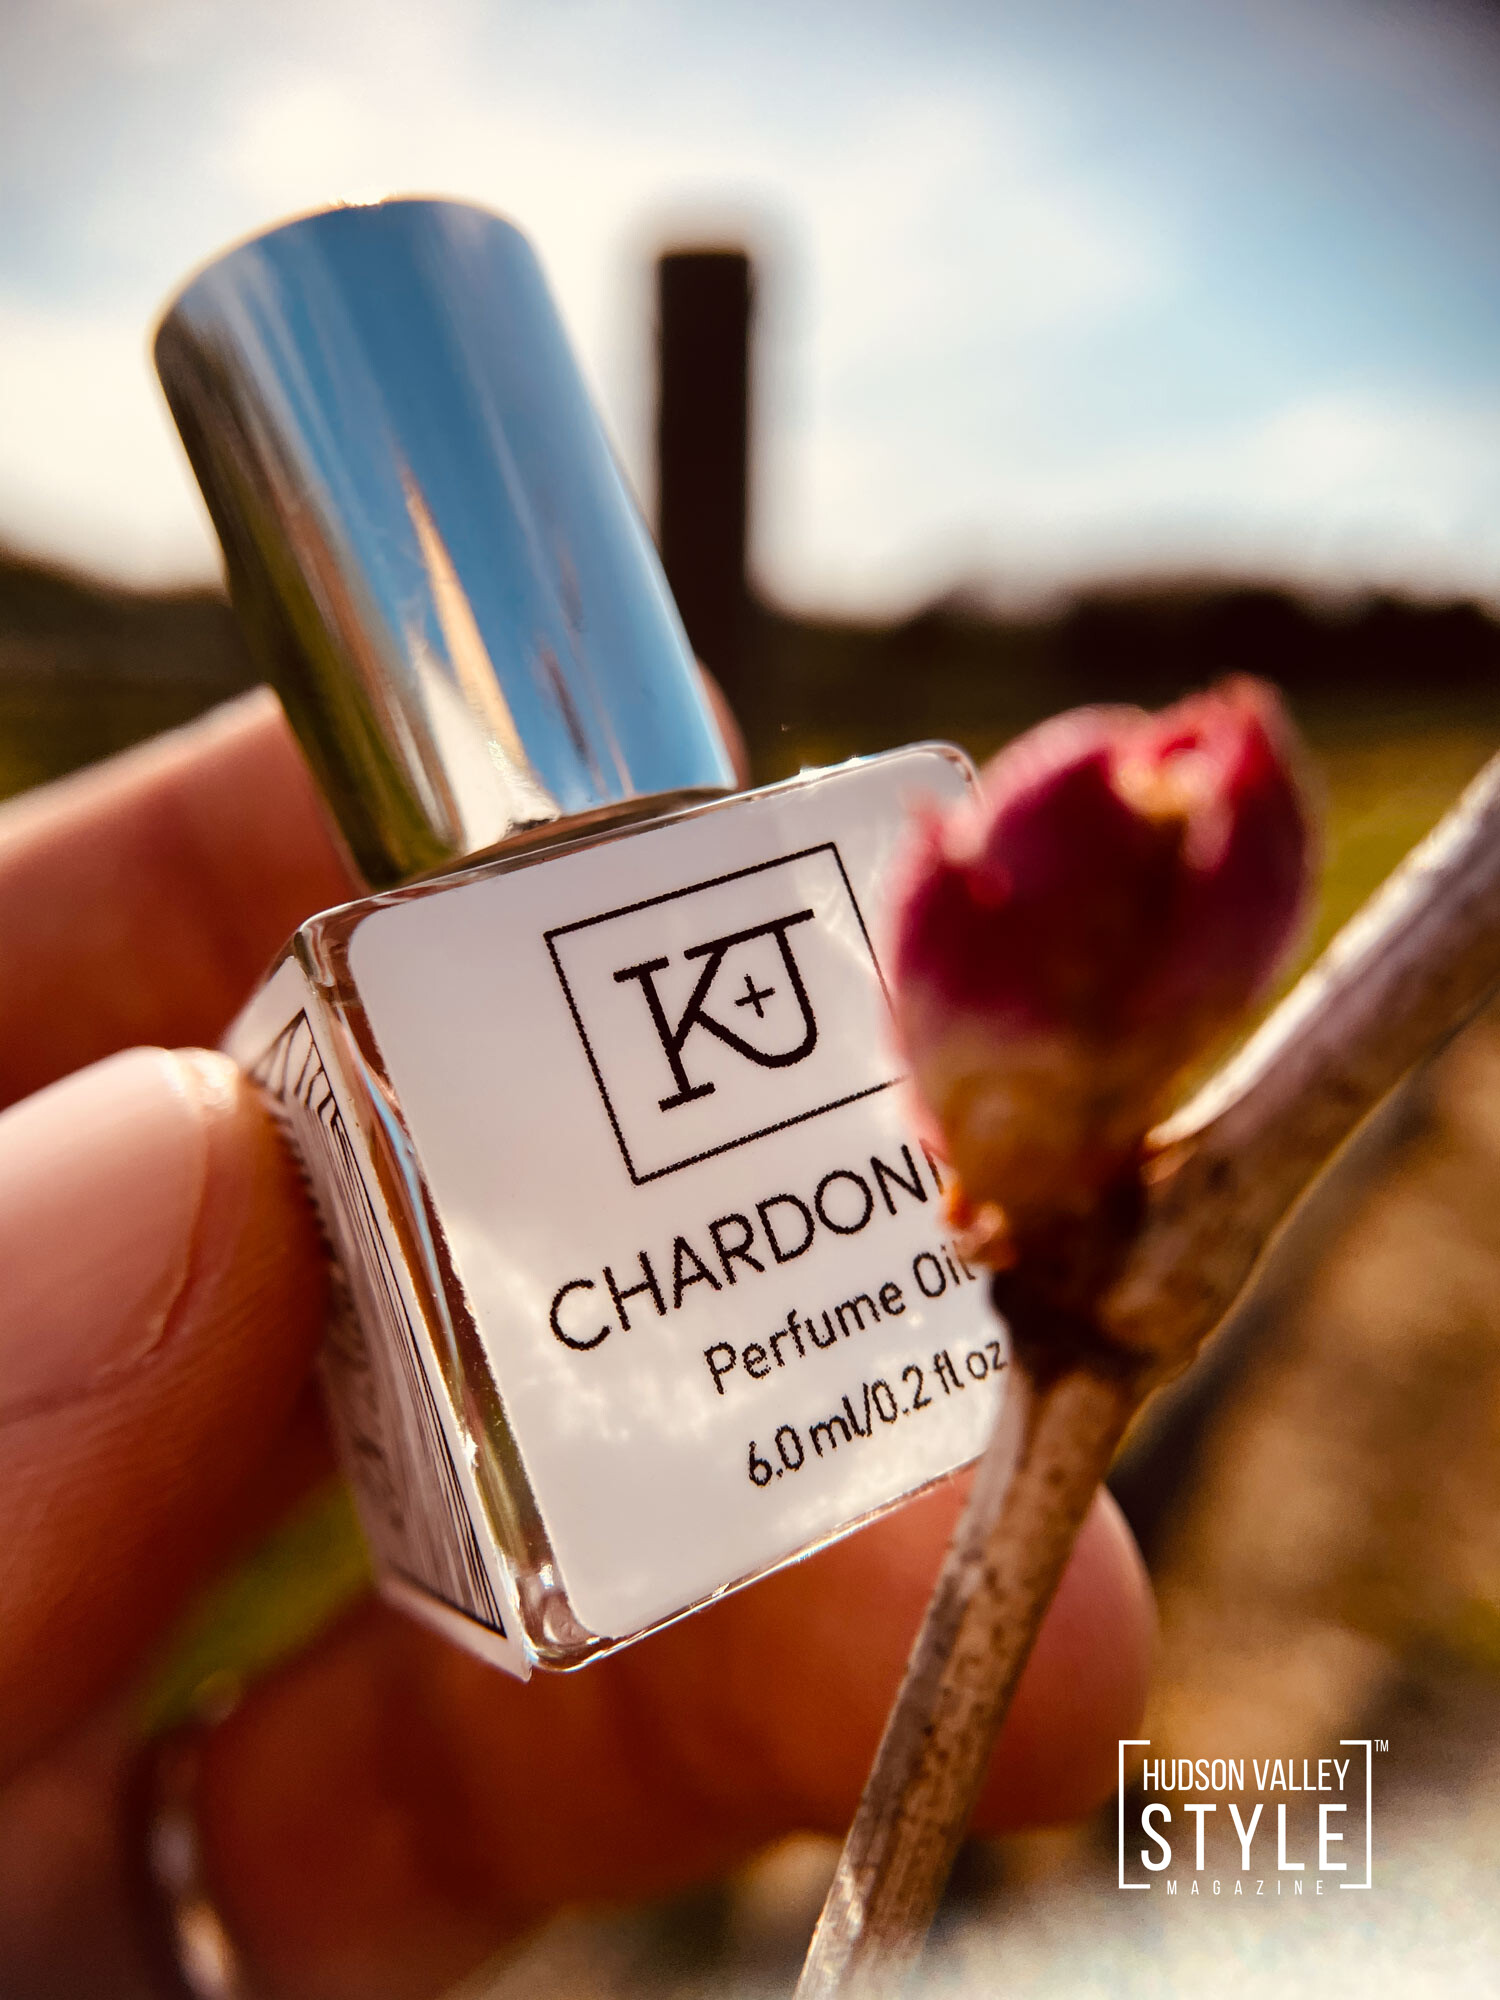 Top 10 Perfume Choices For Women by the Hudson valley Style Magazine